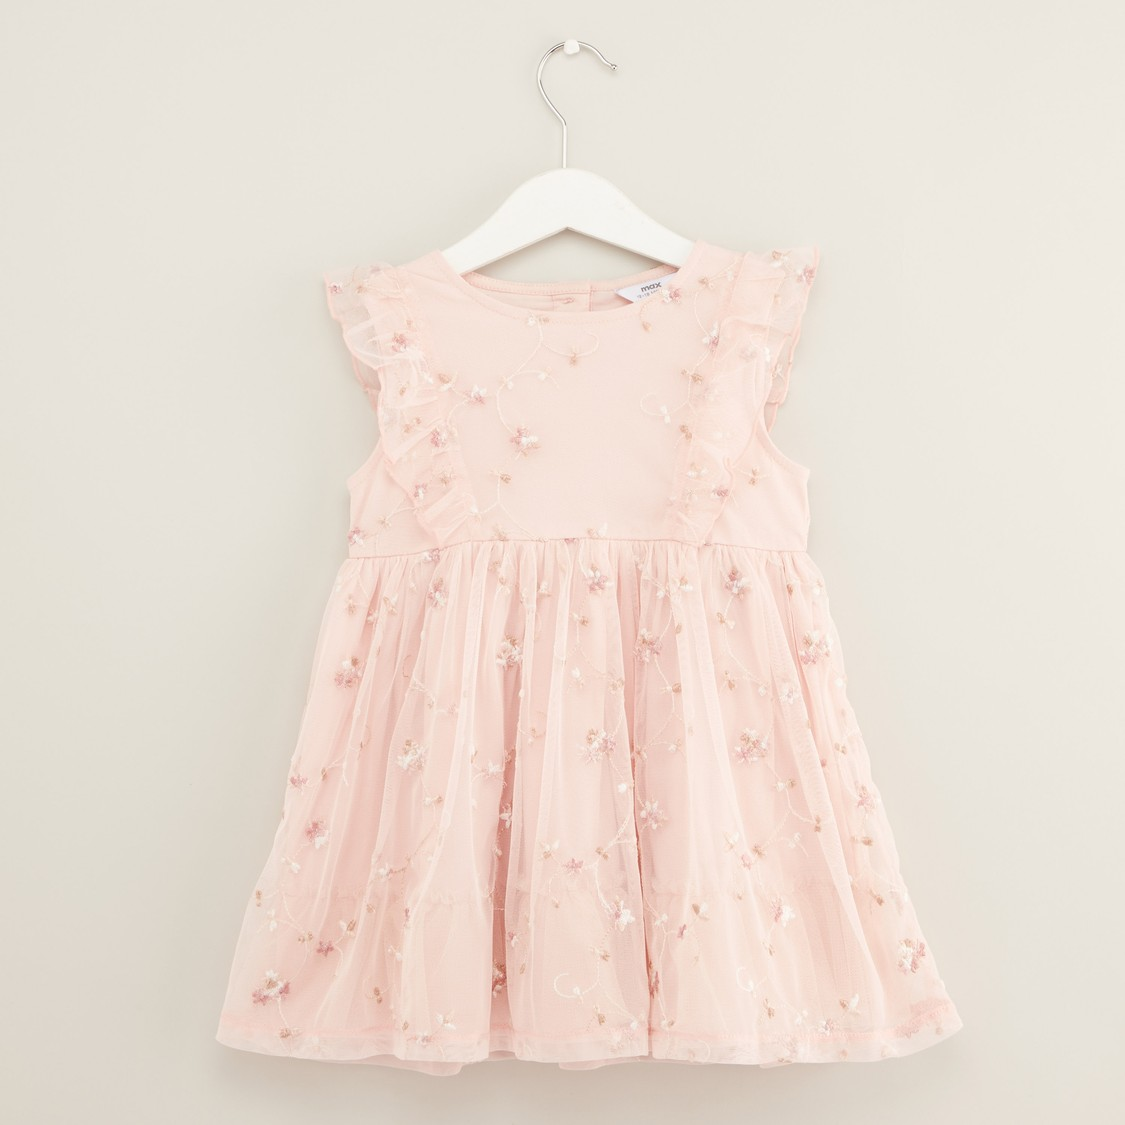 Embroidered Dress with Ruffle Detail